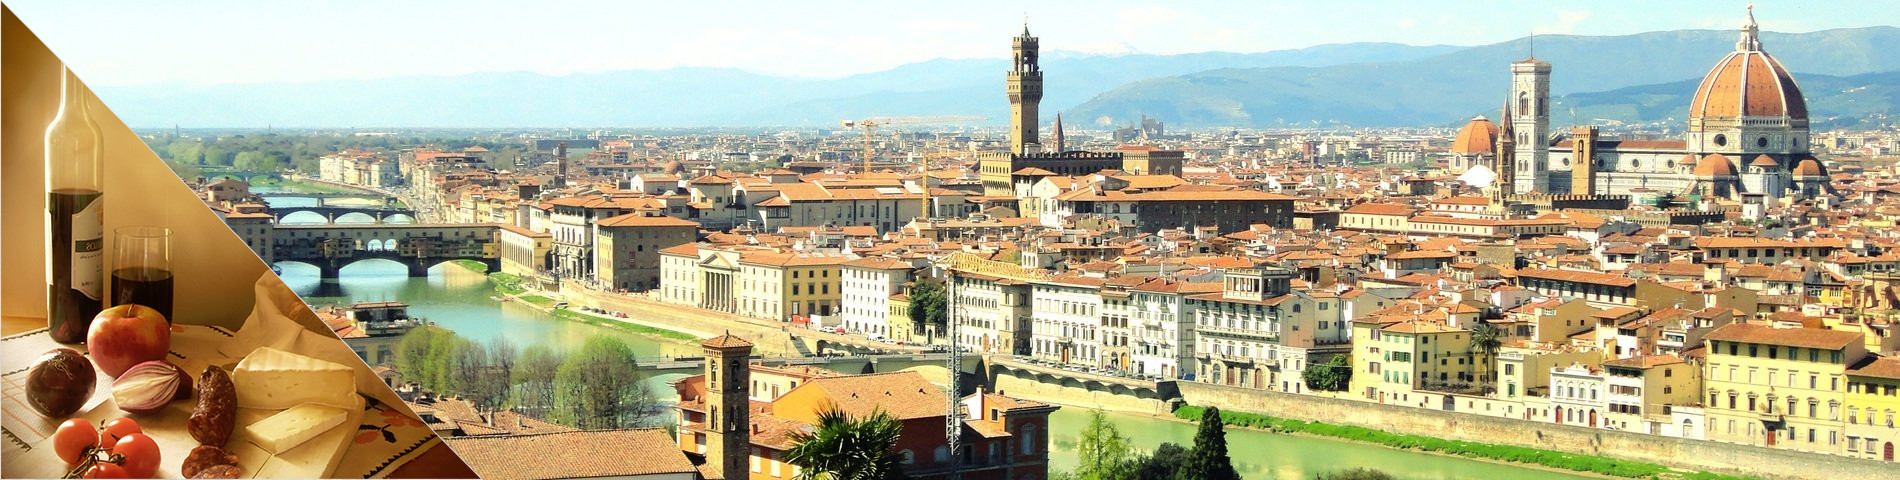 Florence - Italien & Culture